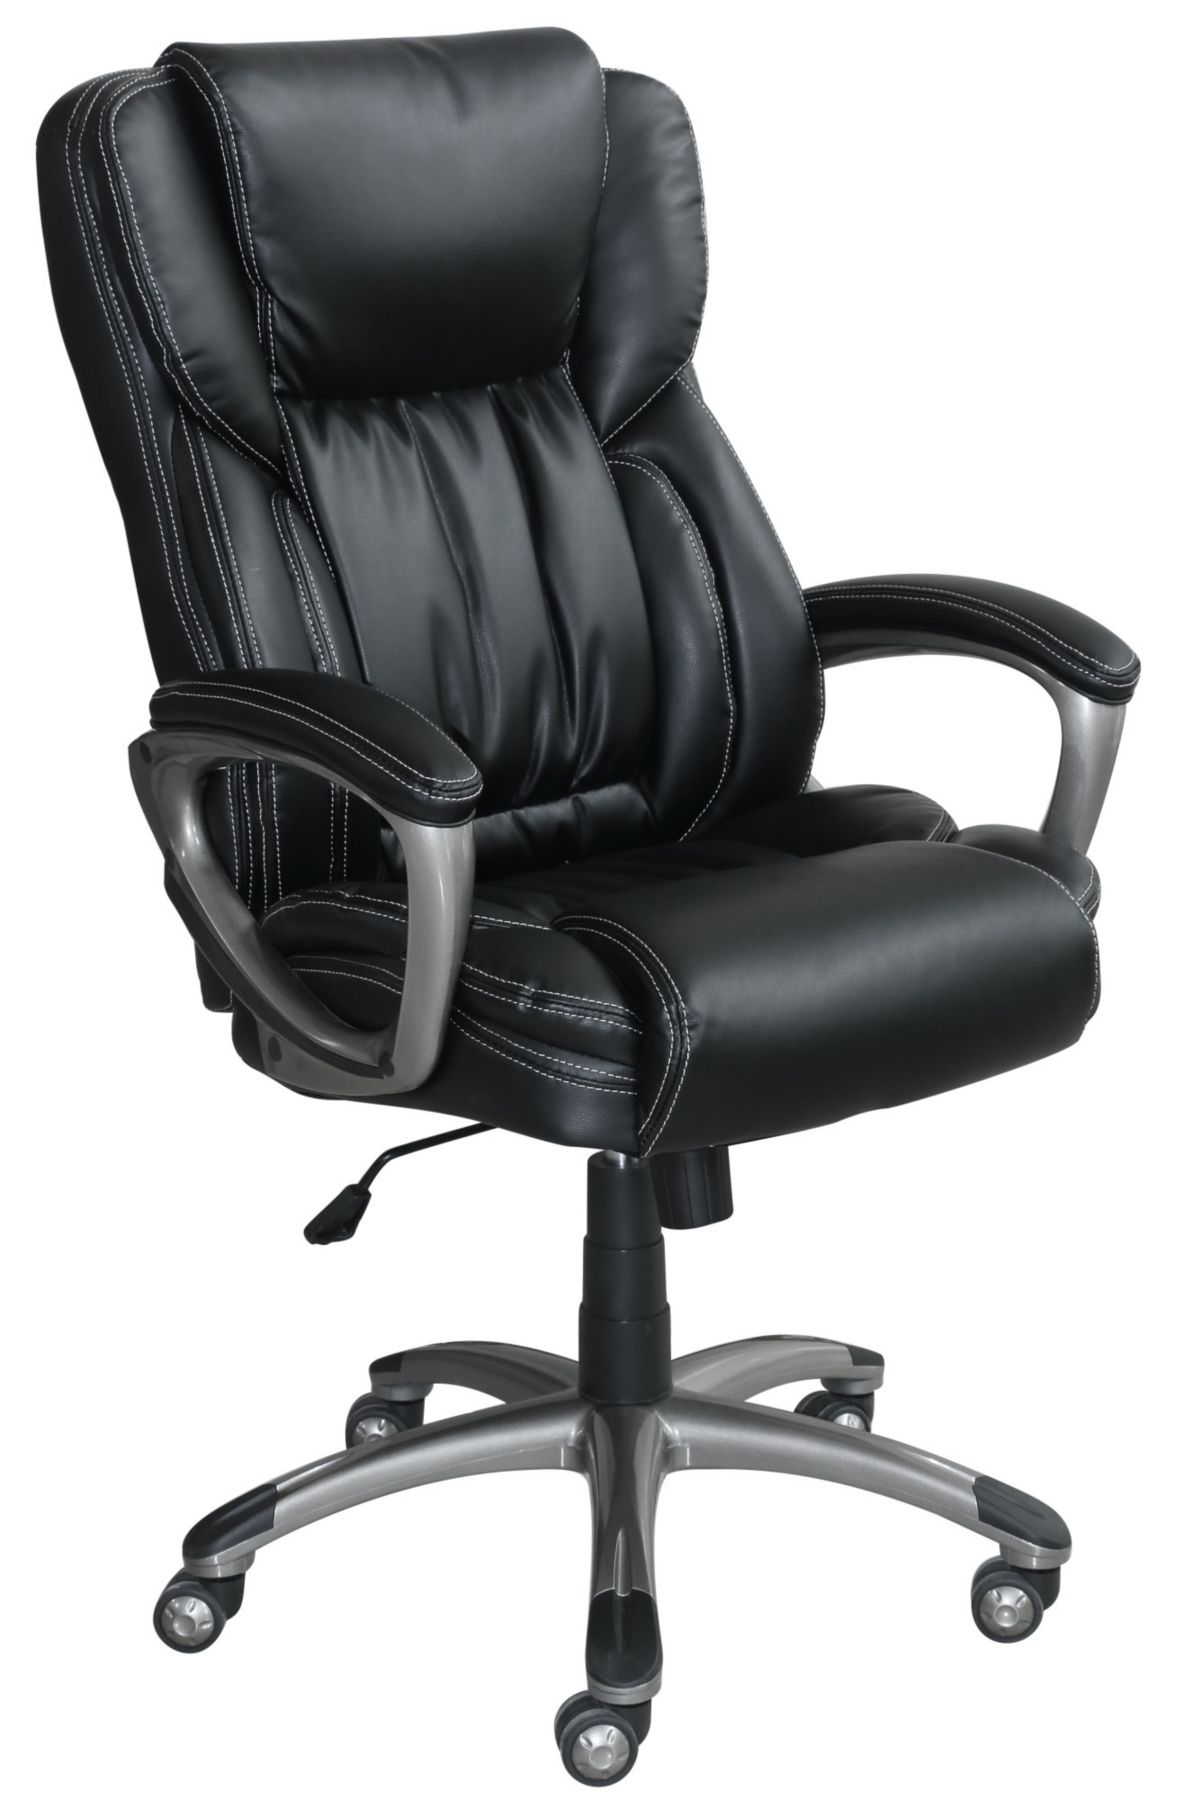 Serta Works Executive Office Chair